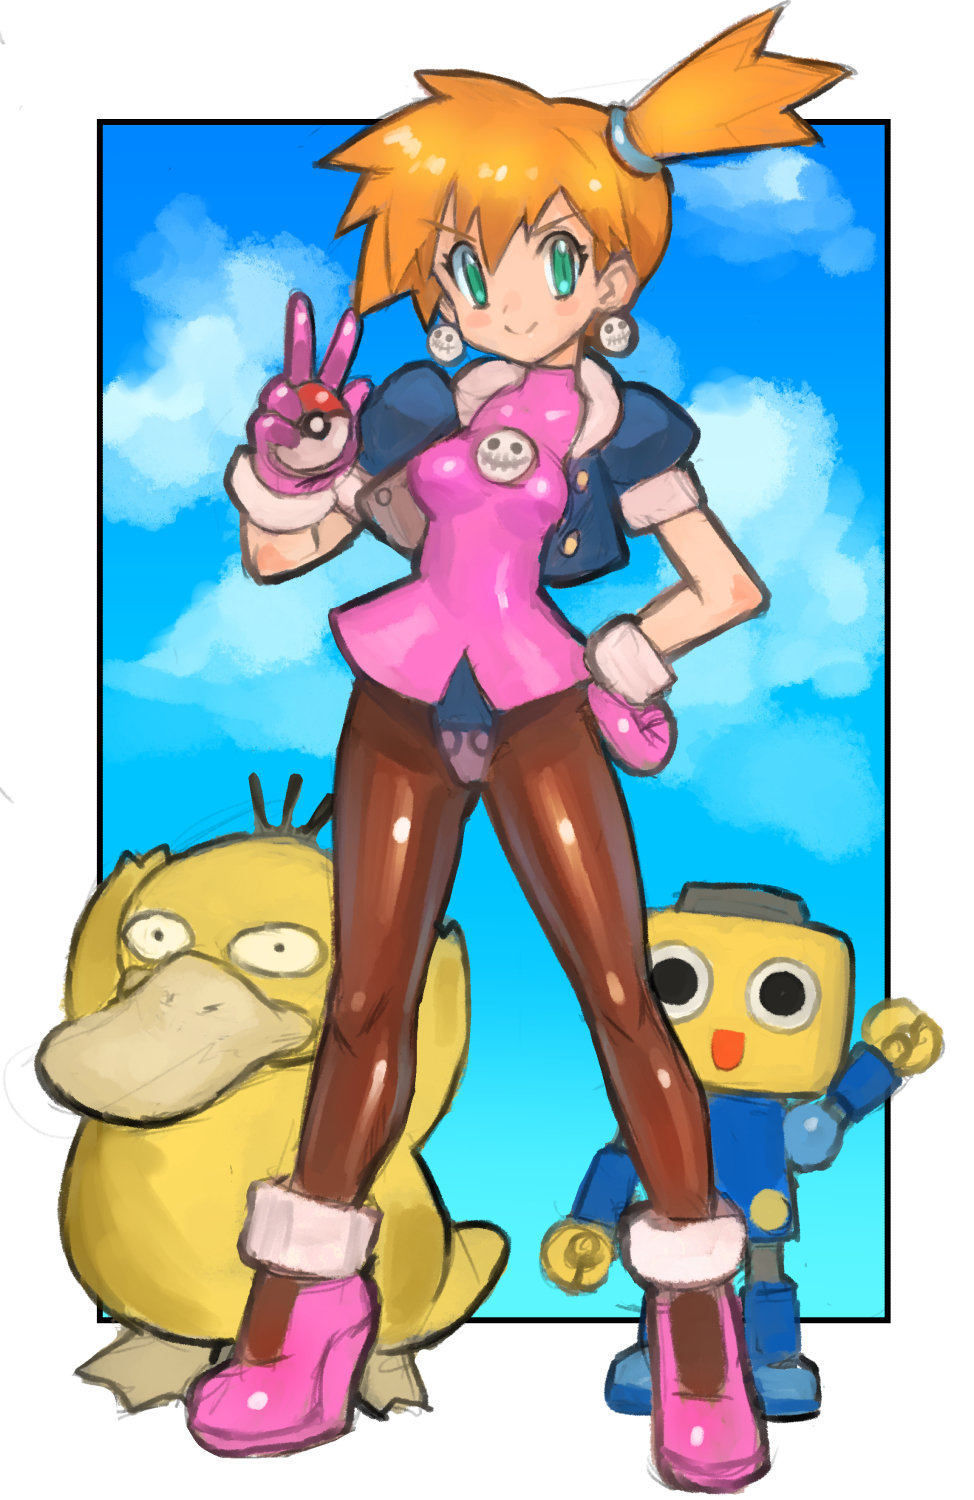 1girl black_eyes cosplay crossover dakusuta earrings gen_1_pokemon green_eyes highres holding holding_poke_ball iizuka_mayumi jewelry kasumi_(pokemon) kobun orange_hair pantyhose poke_ball poke_ball_(basic) pokemon pokemon_(creature) pokemon_(game) pokemon_rgby psyduck robot rockman rockman_dash seiyuu_connection tron_bonne tron_bonne_(cosplay) v waving